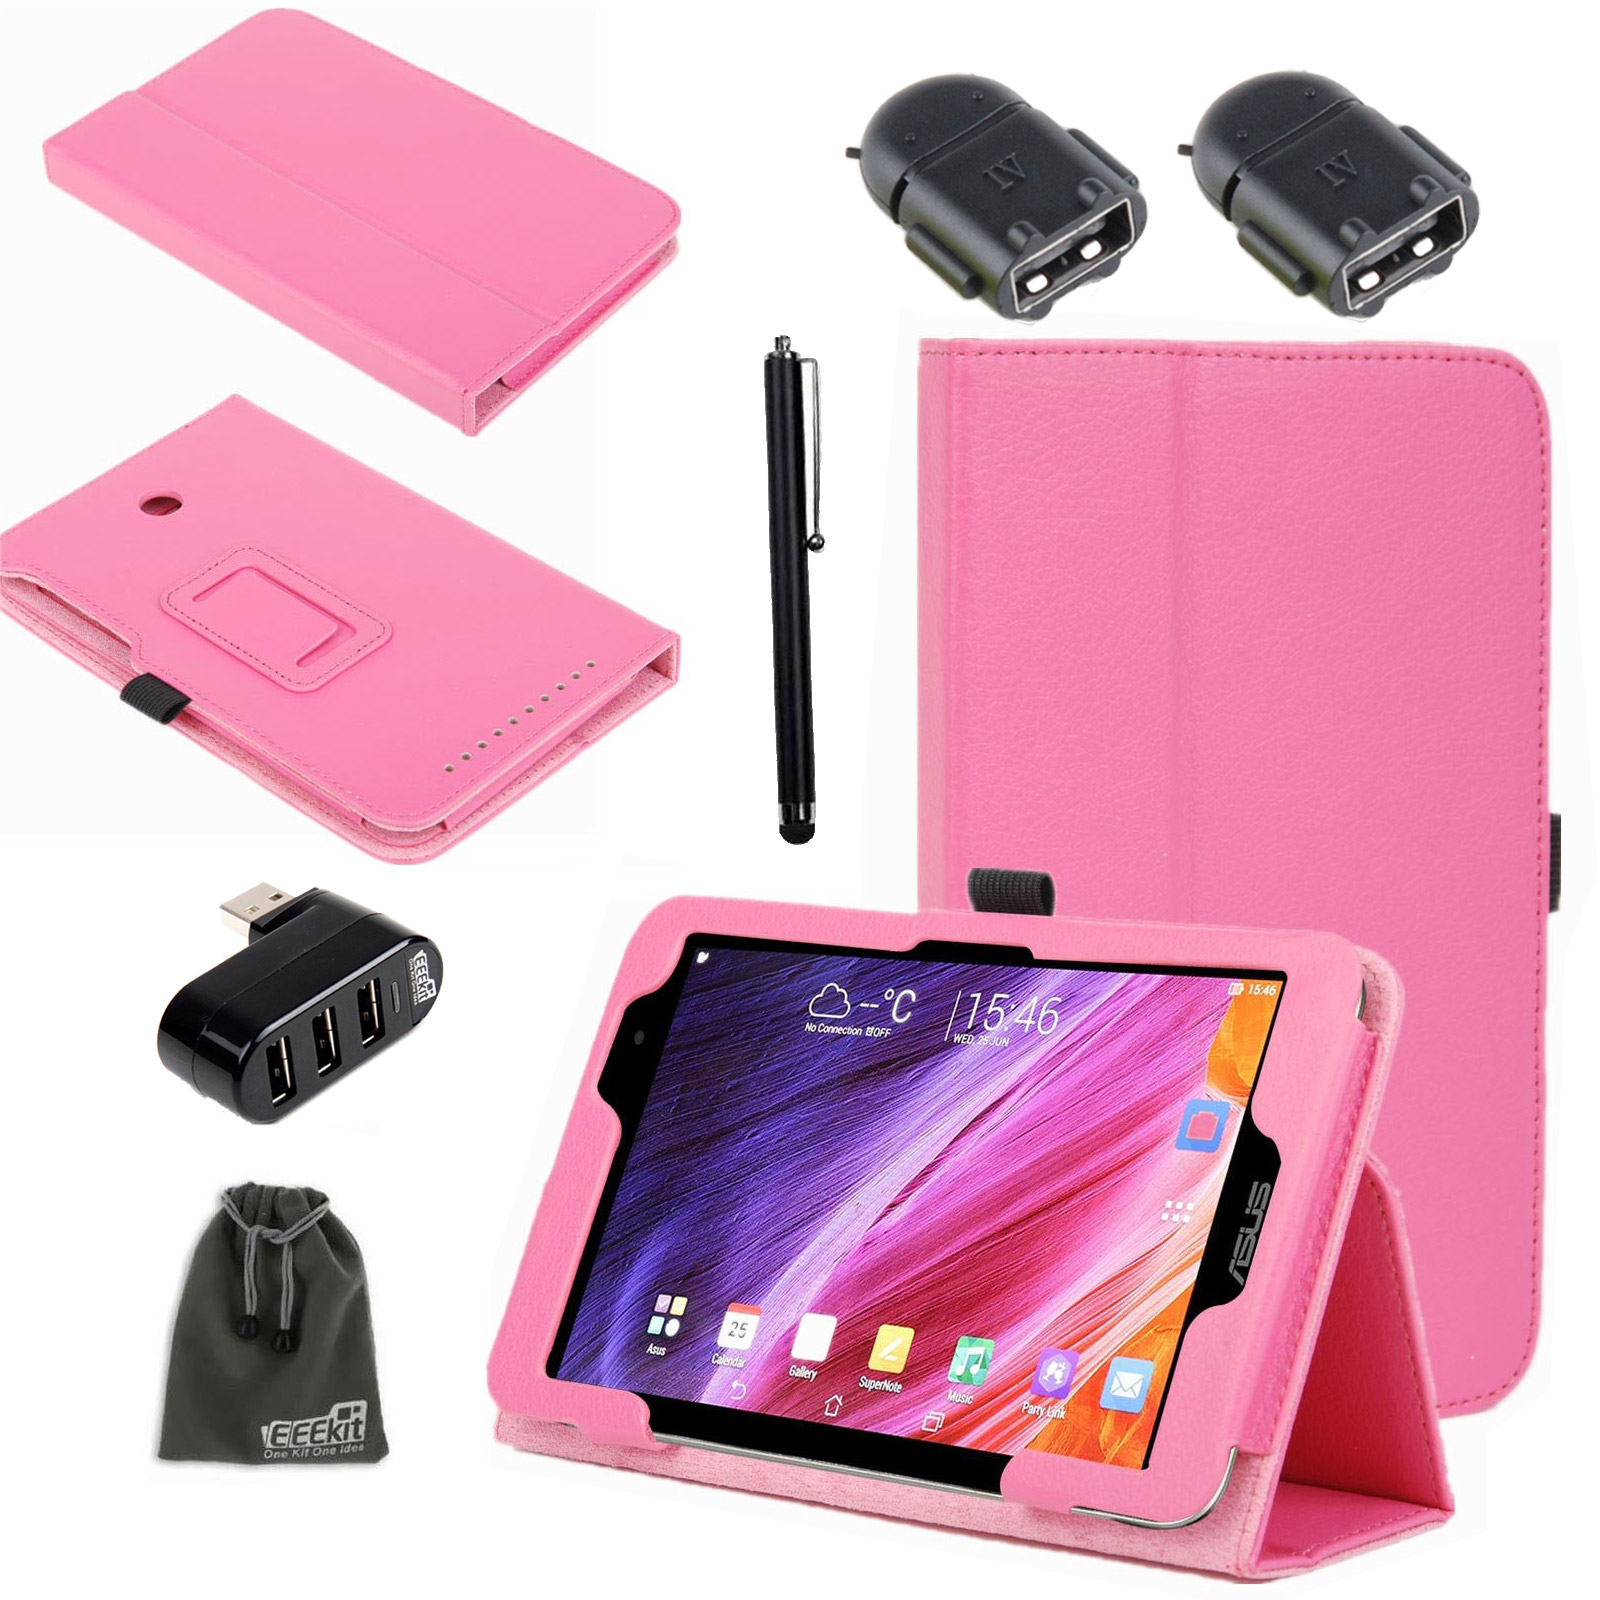 EEEKit for Asus Memo Pad ME176CX/176C 7 Inch Tablet,OTG Adapter+Stand Cover Case